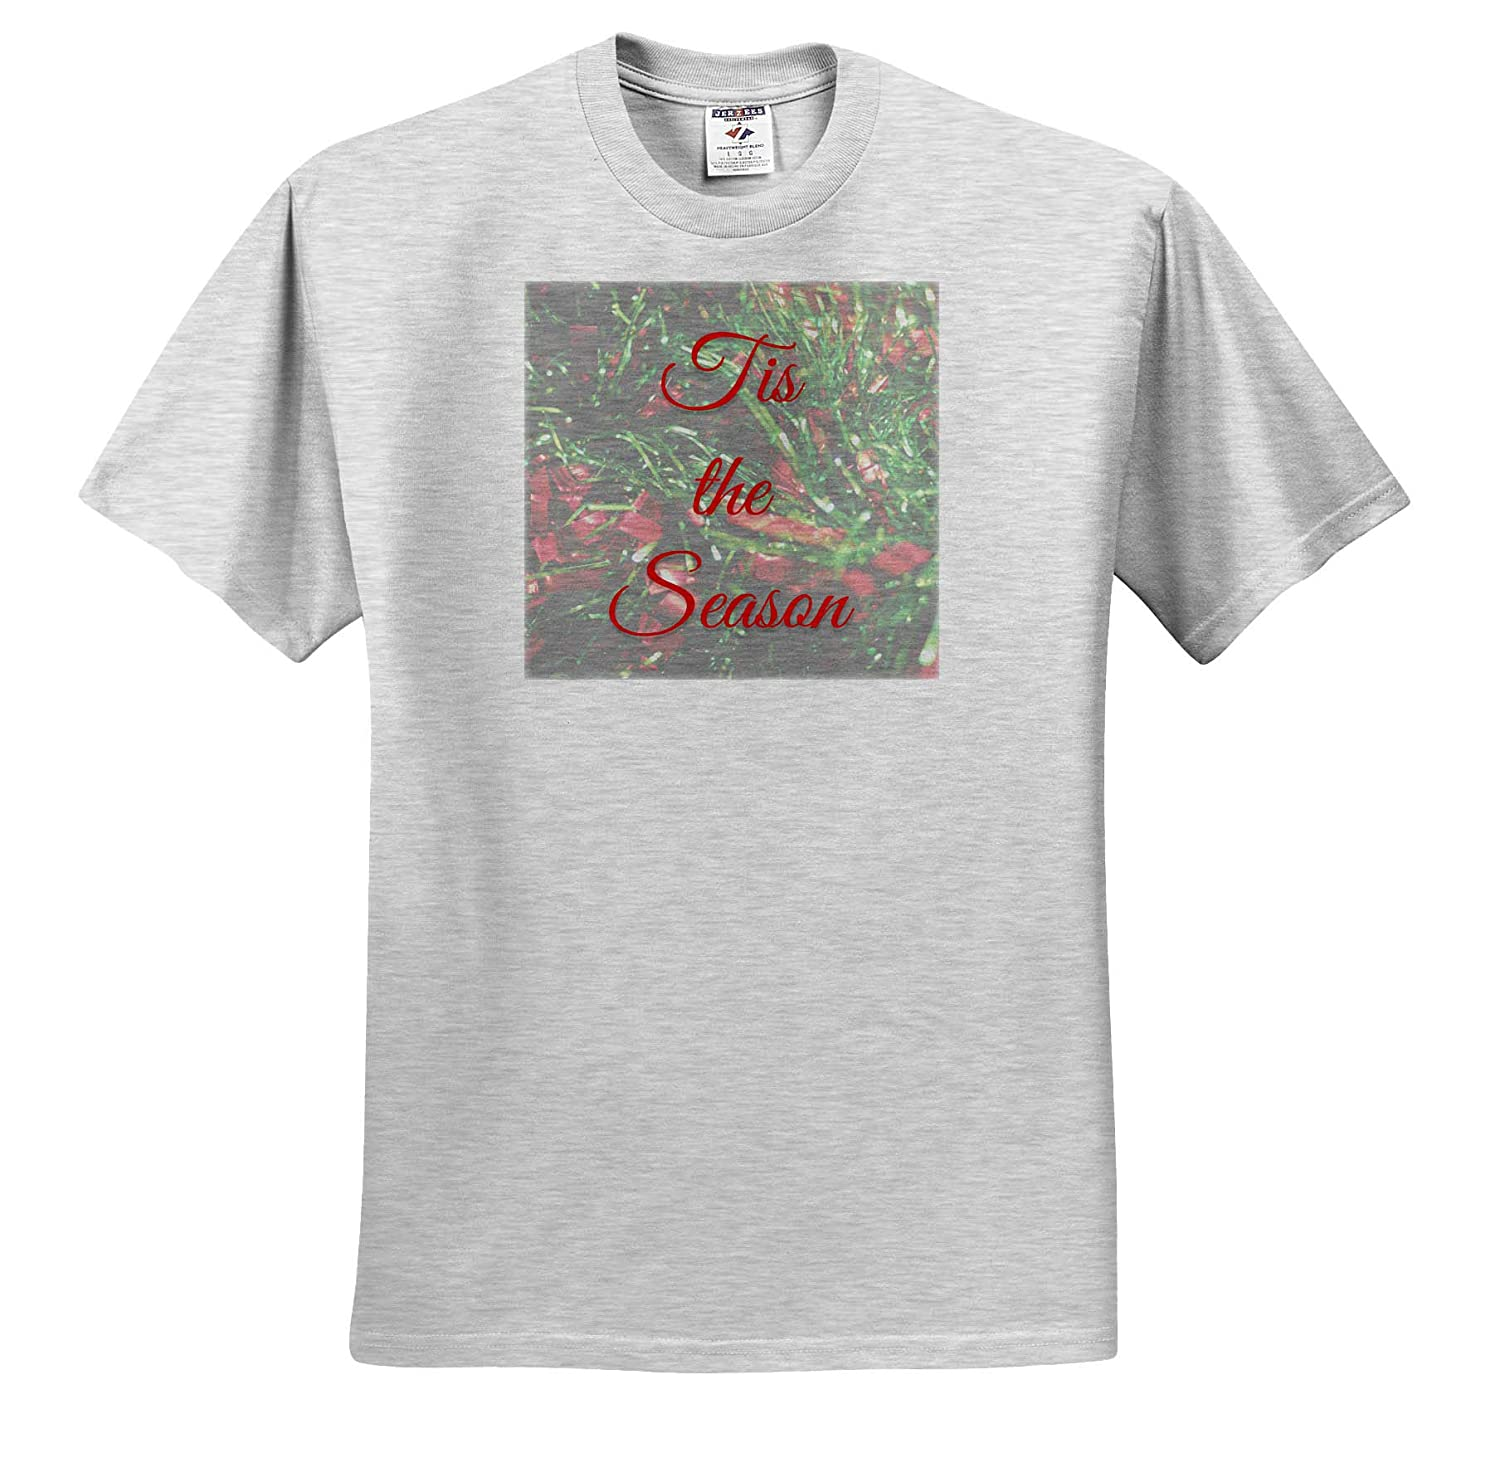 3dRose Stamp City Typography Photograph of Faded Garland with Tis The Season in Typography - T-Shirts